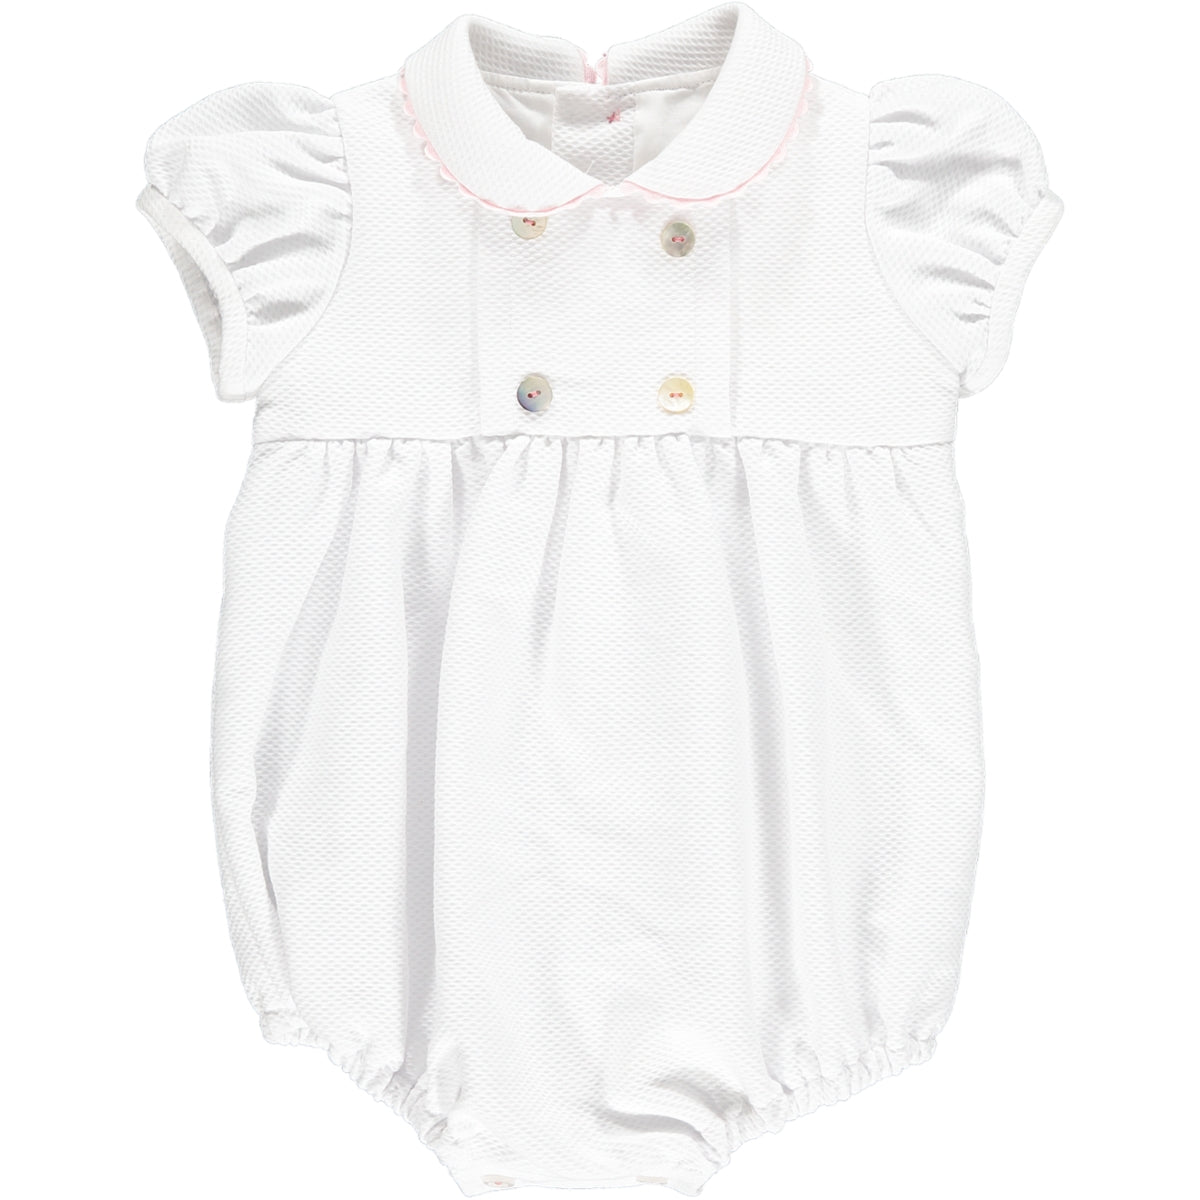 Babydoll Romper White/Pink